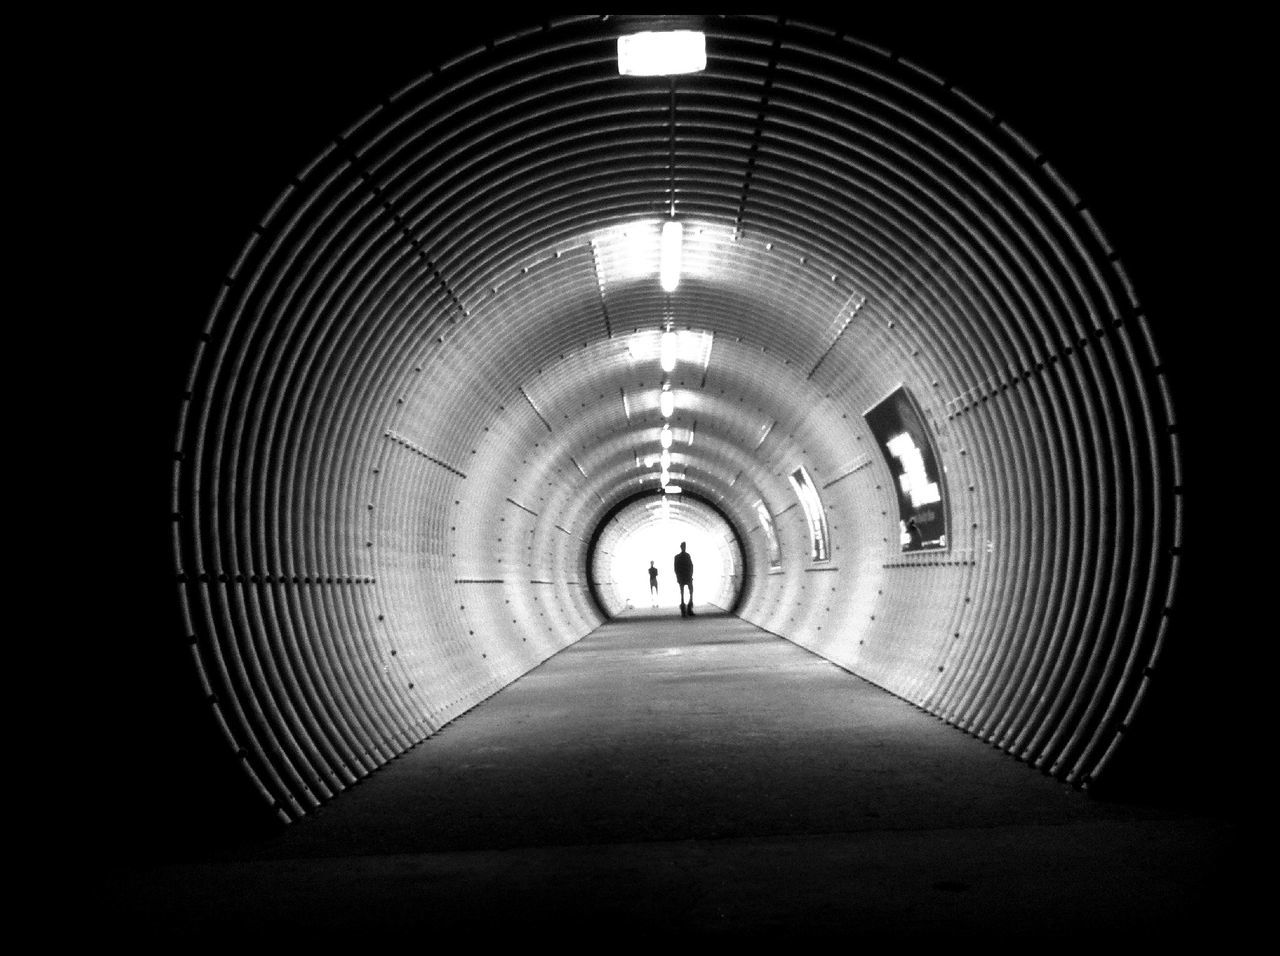 Silhouette people in illuminated tunnel